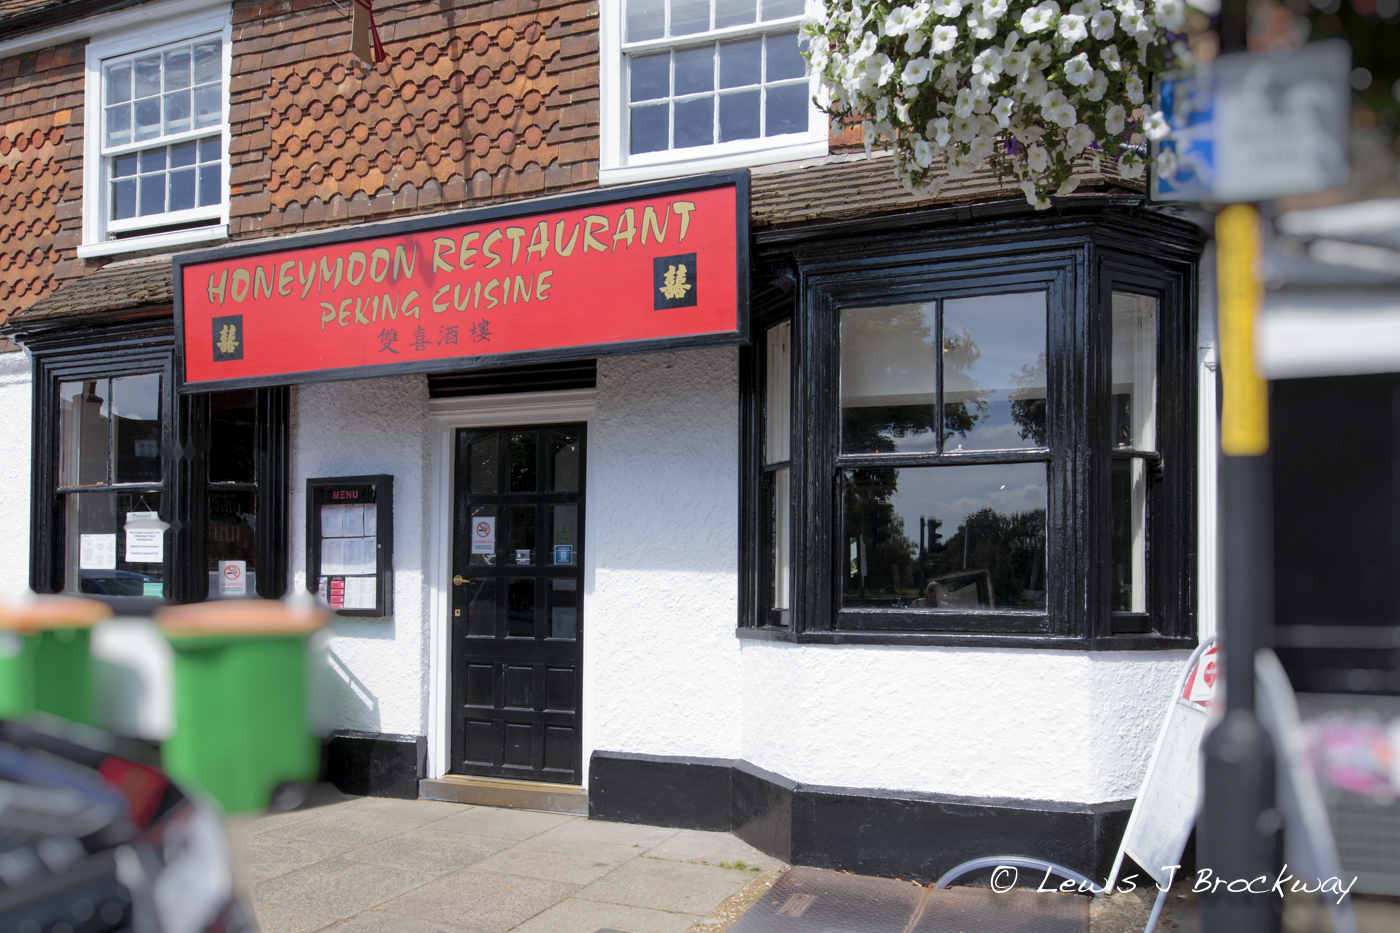 Shop and business changes in Tenterden